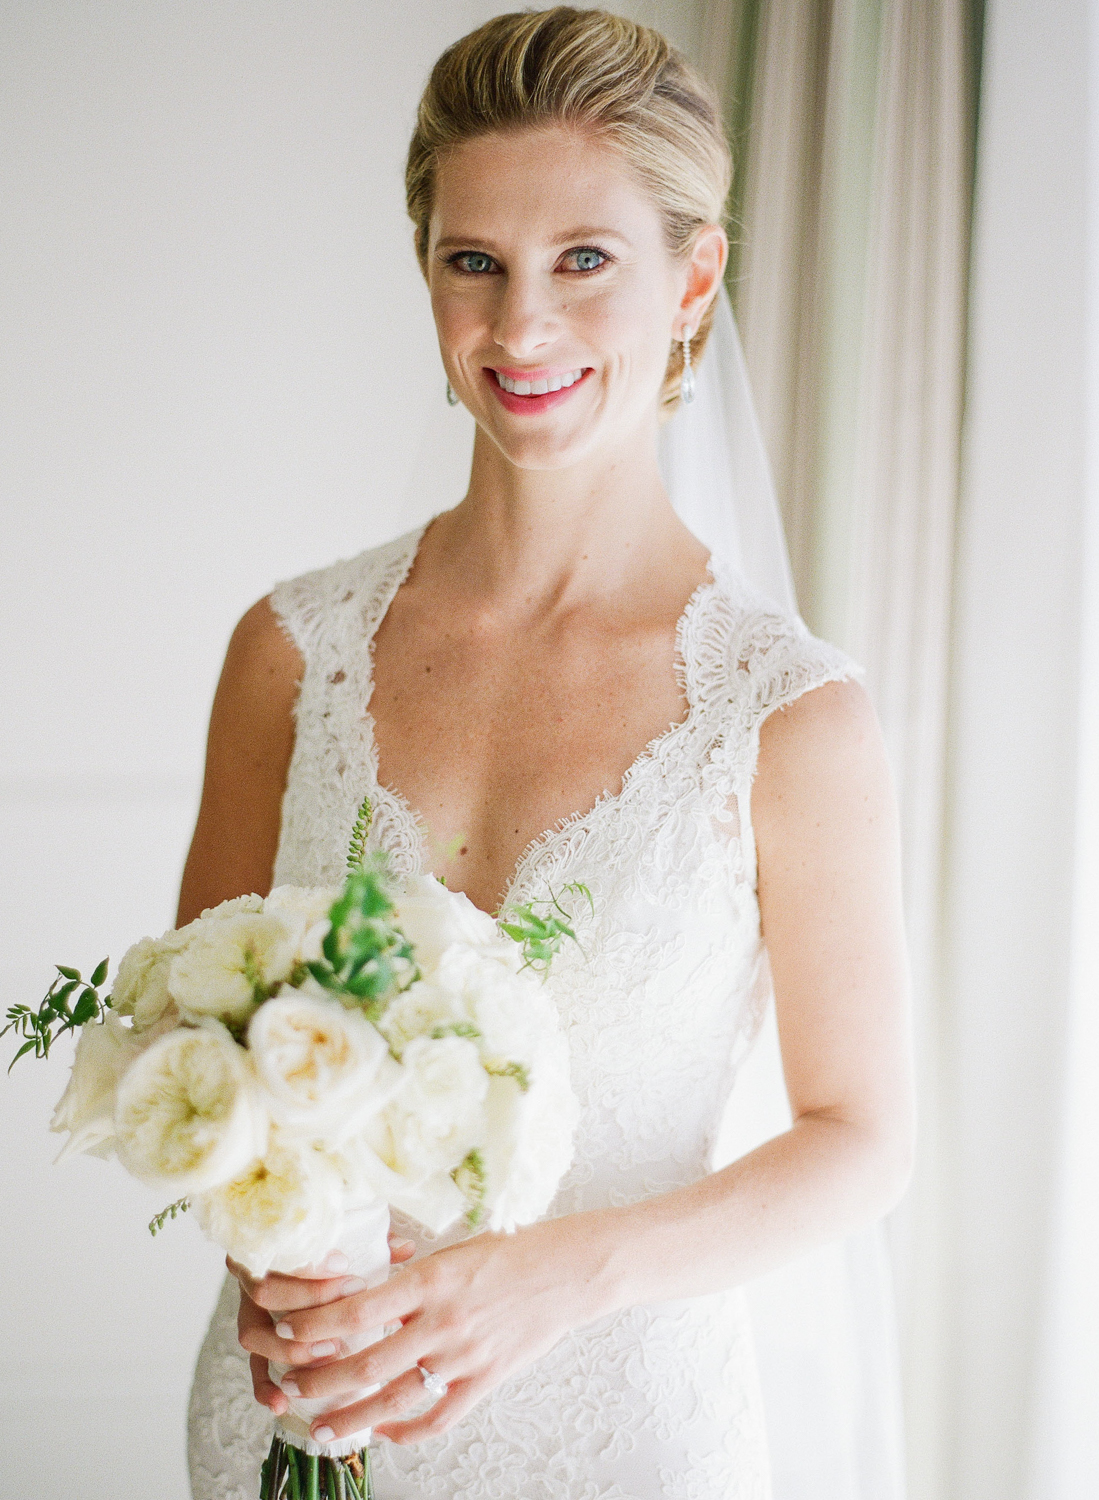 Margo, the beautiful bride, poses in her simple yet elegant lace gown and veil, with a bouquet of cream and olive florals; photo by Sylvie Gil